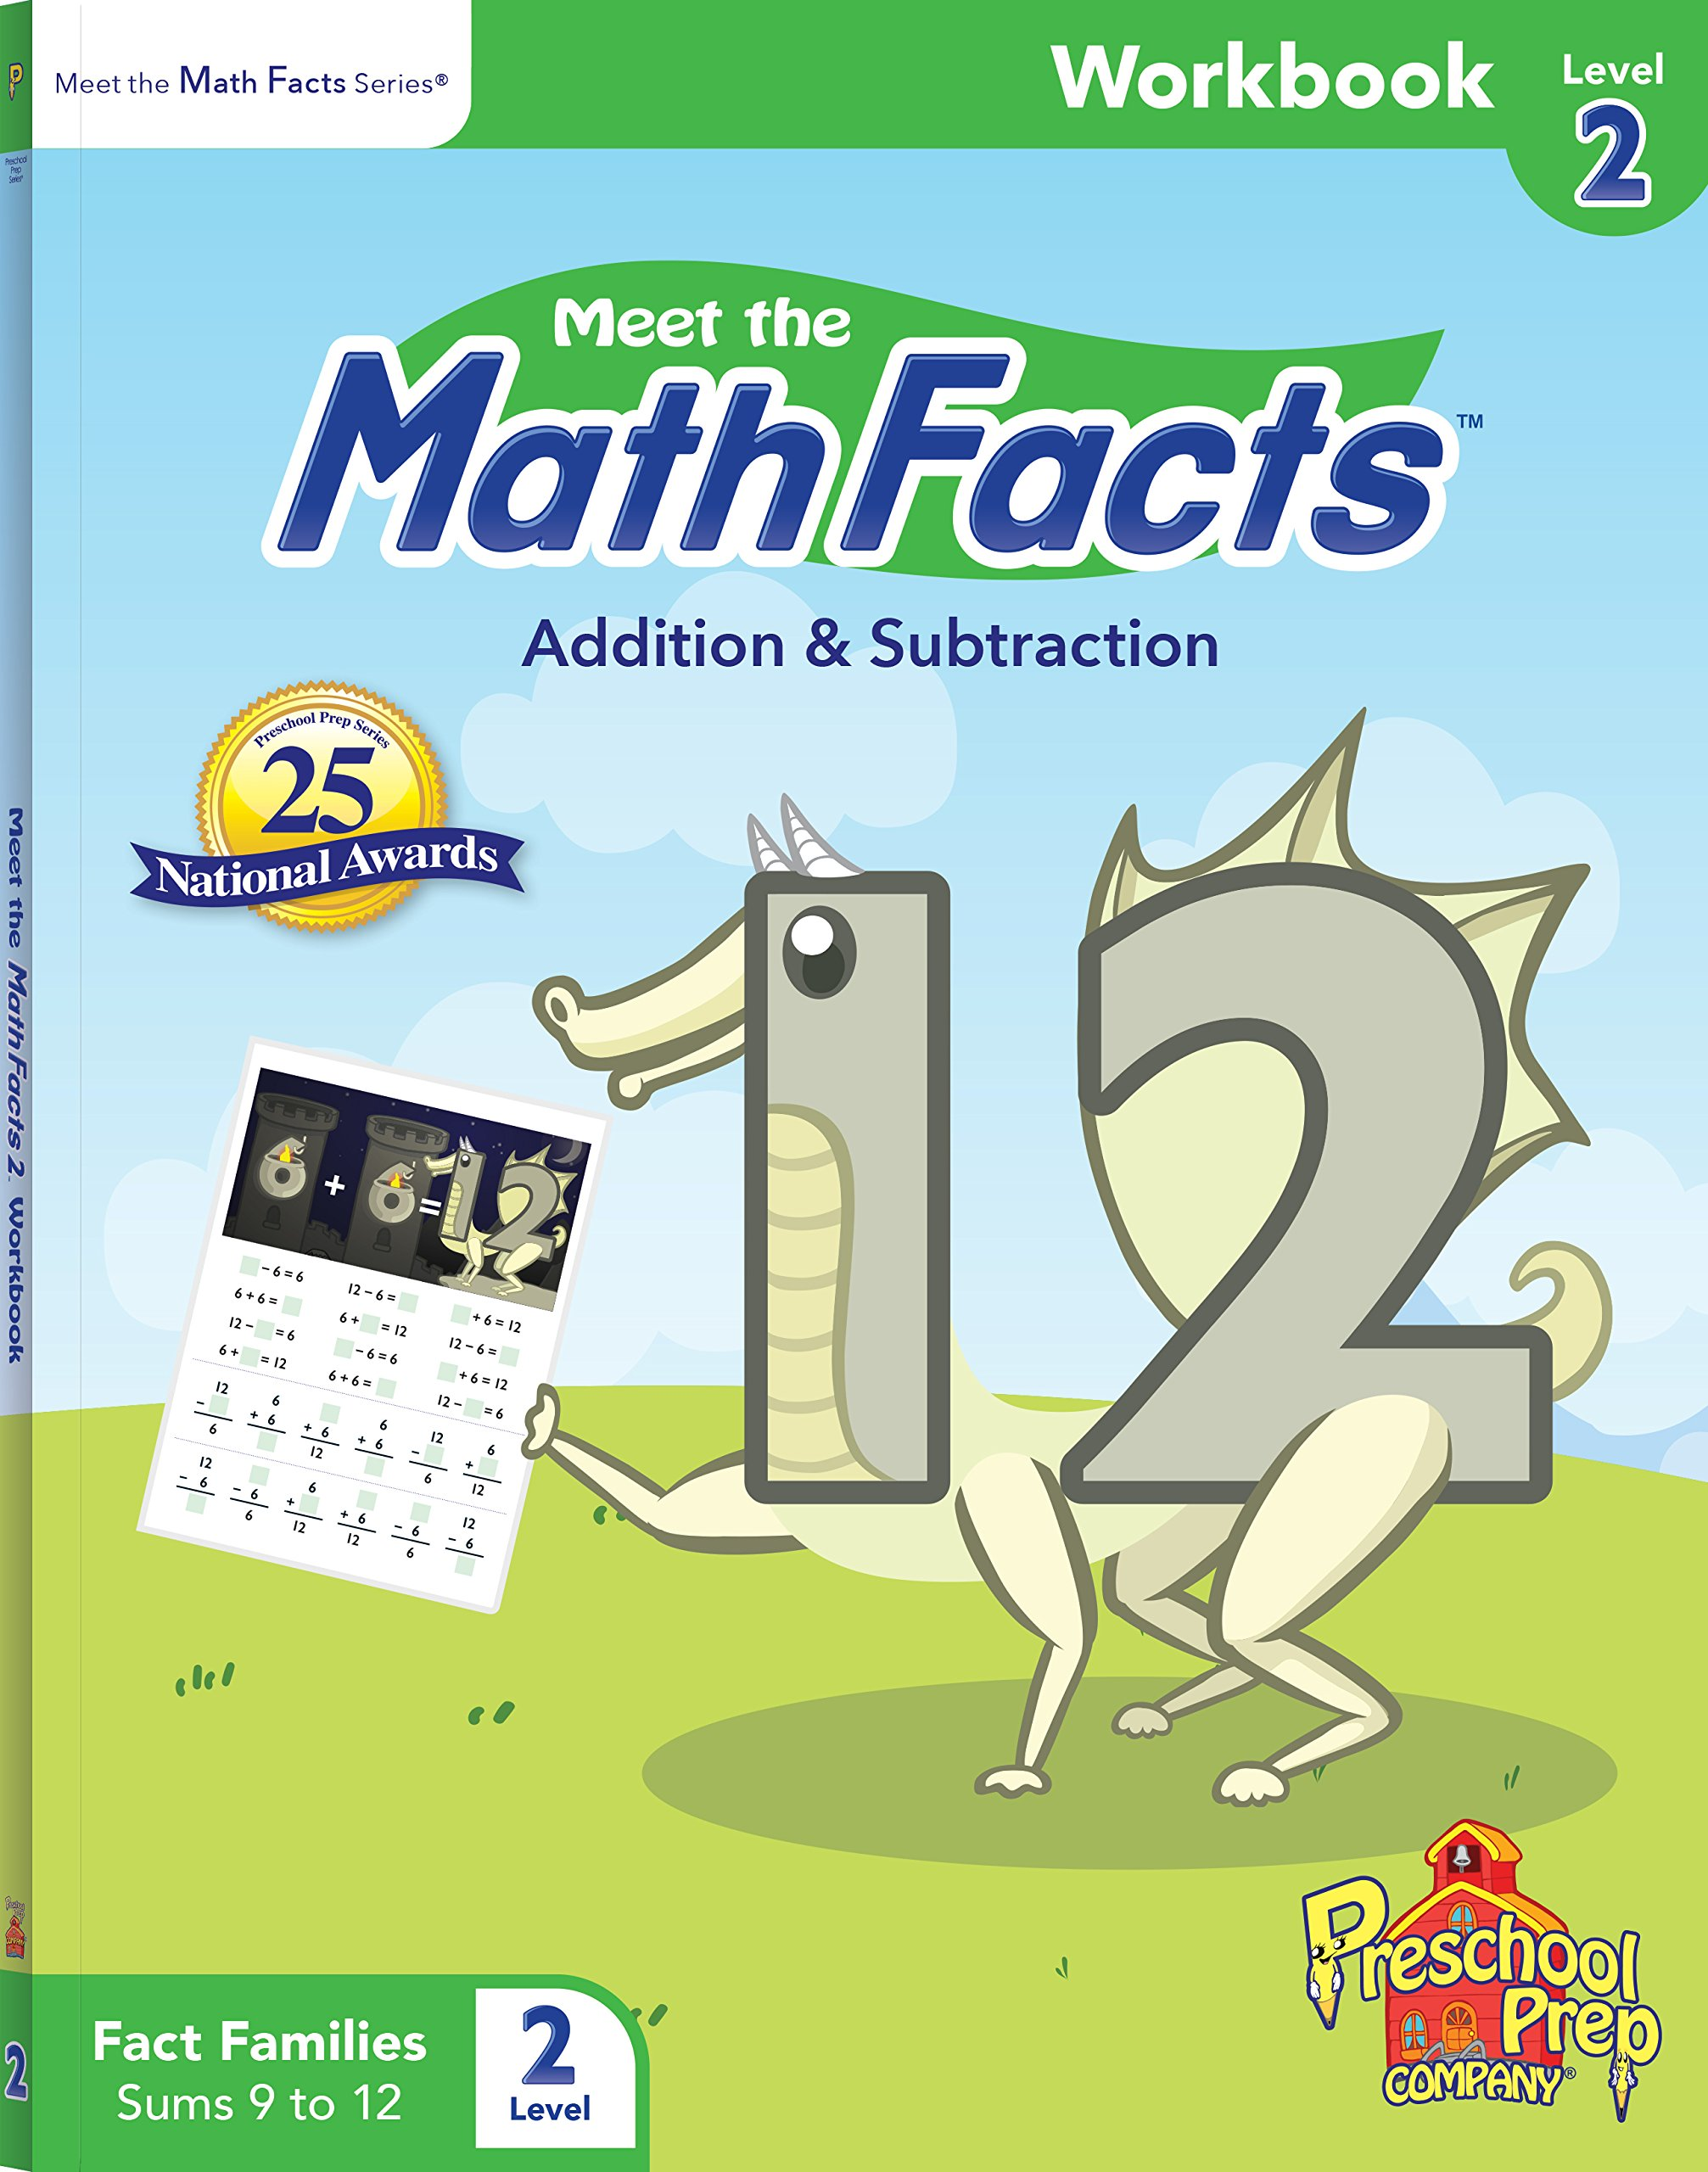 Meet the Math Facts Level 2 - Workbook: Kathy Oxley: 0855772005193 ...